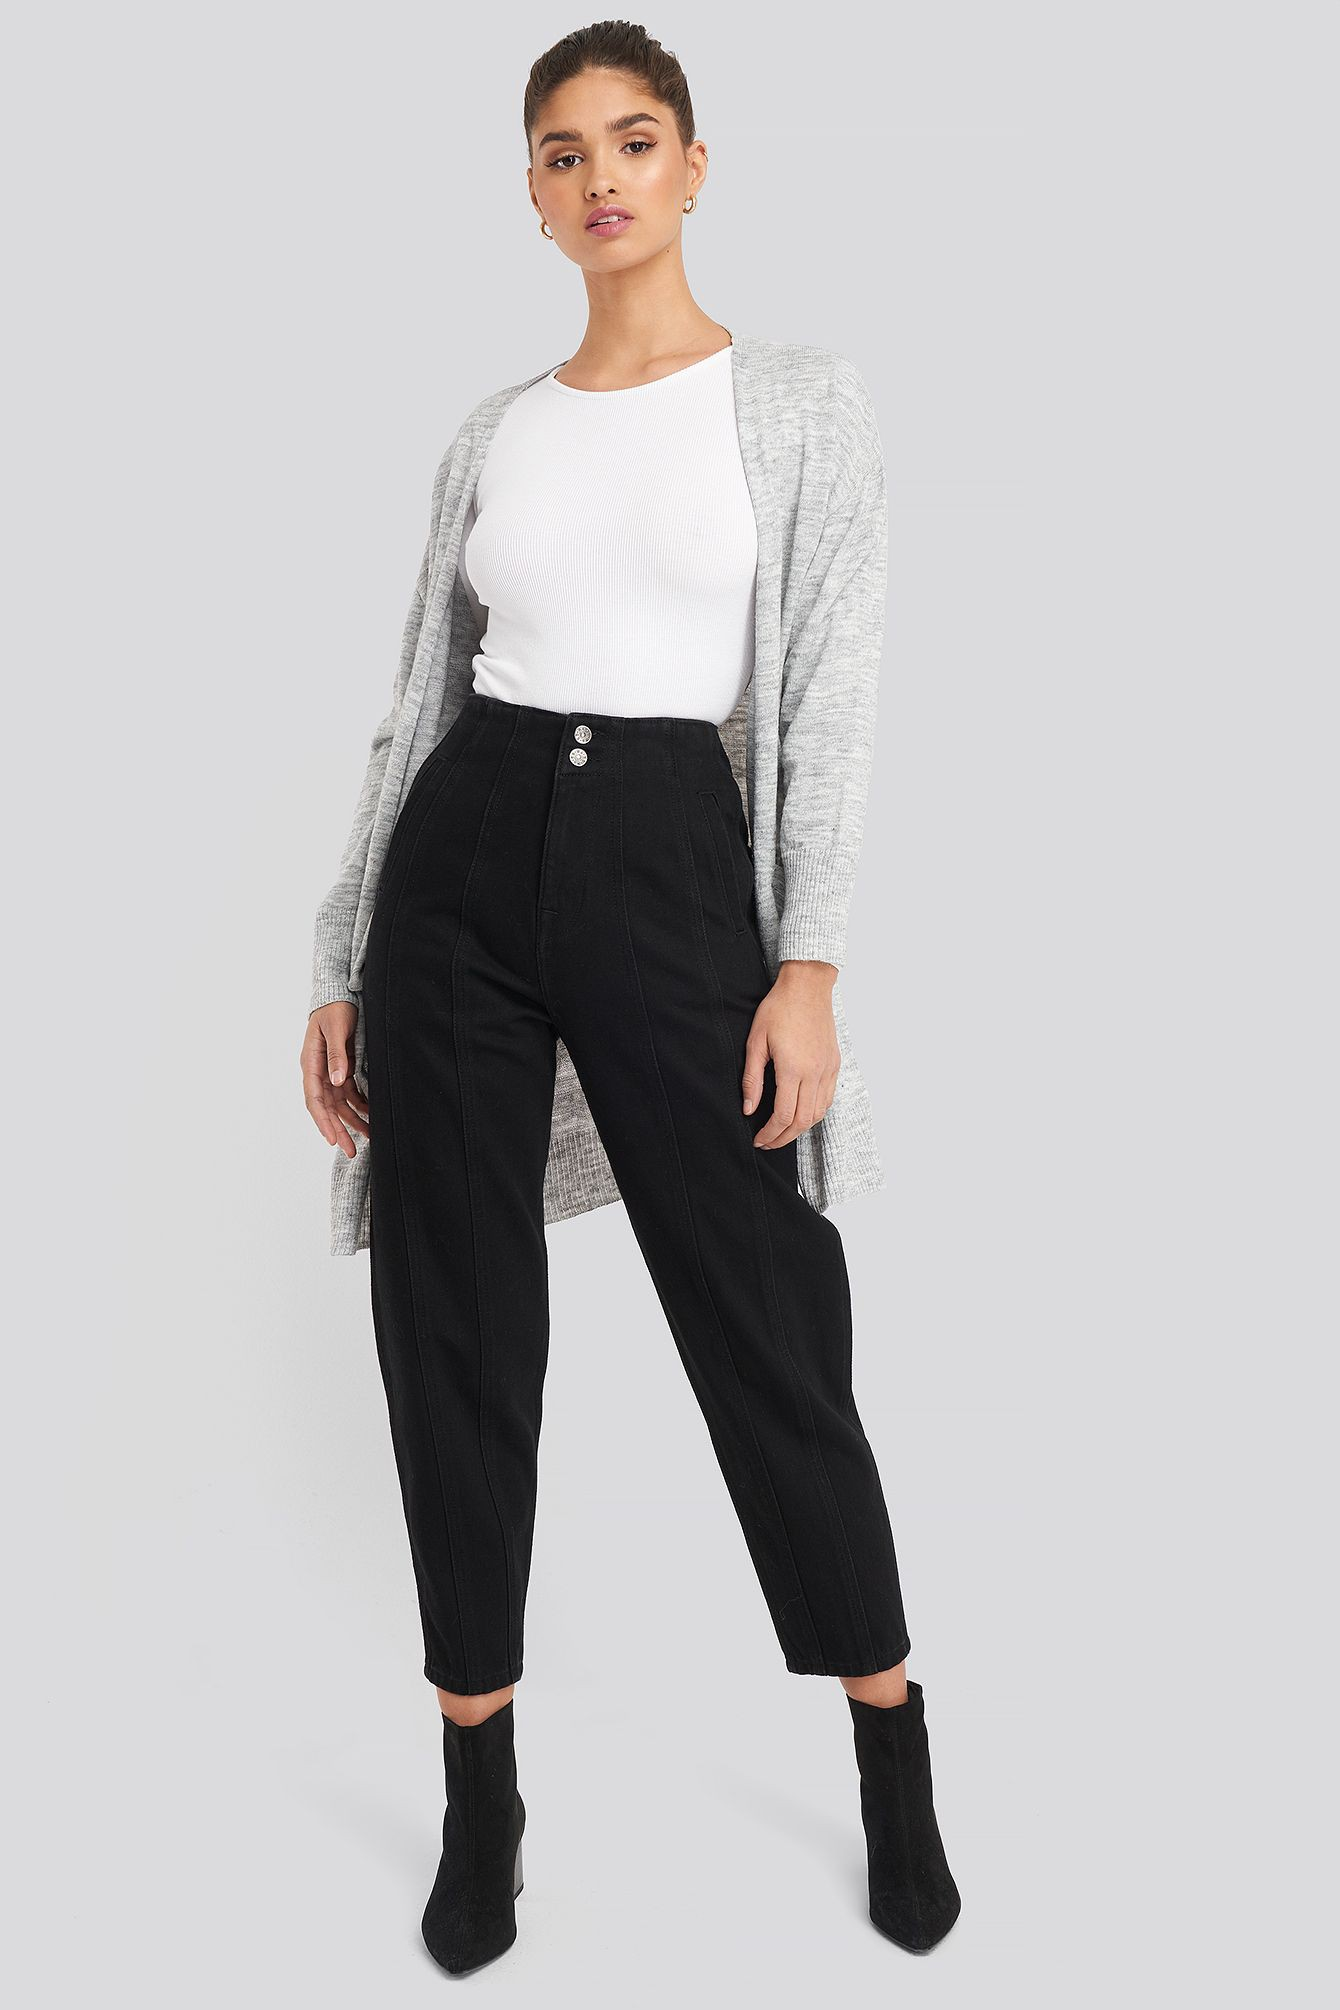 Black and white colour ideas with sportswear, trousers, jeans